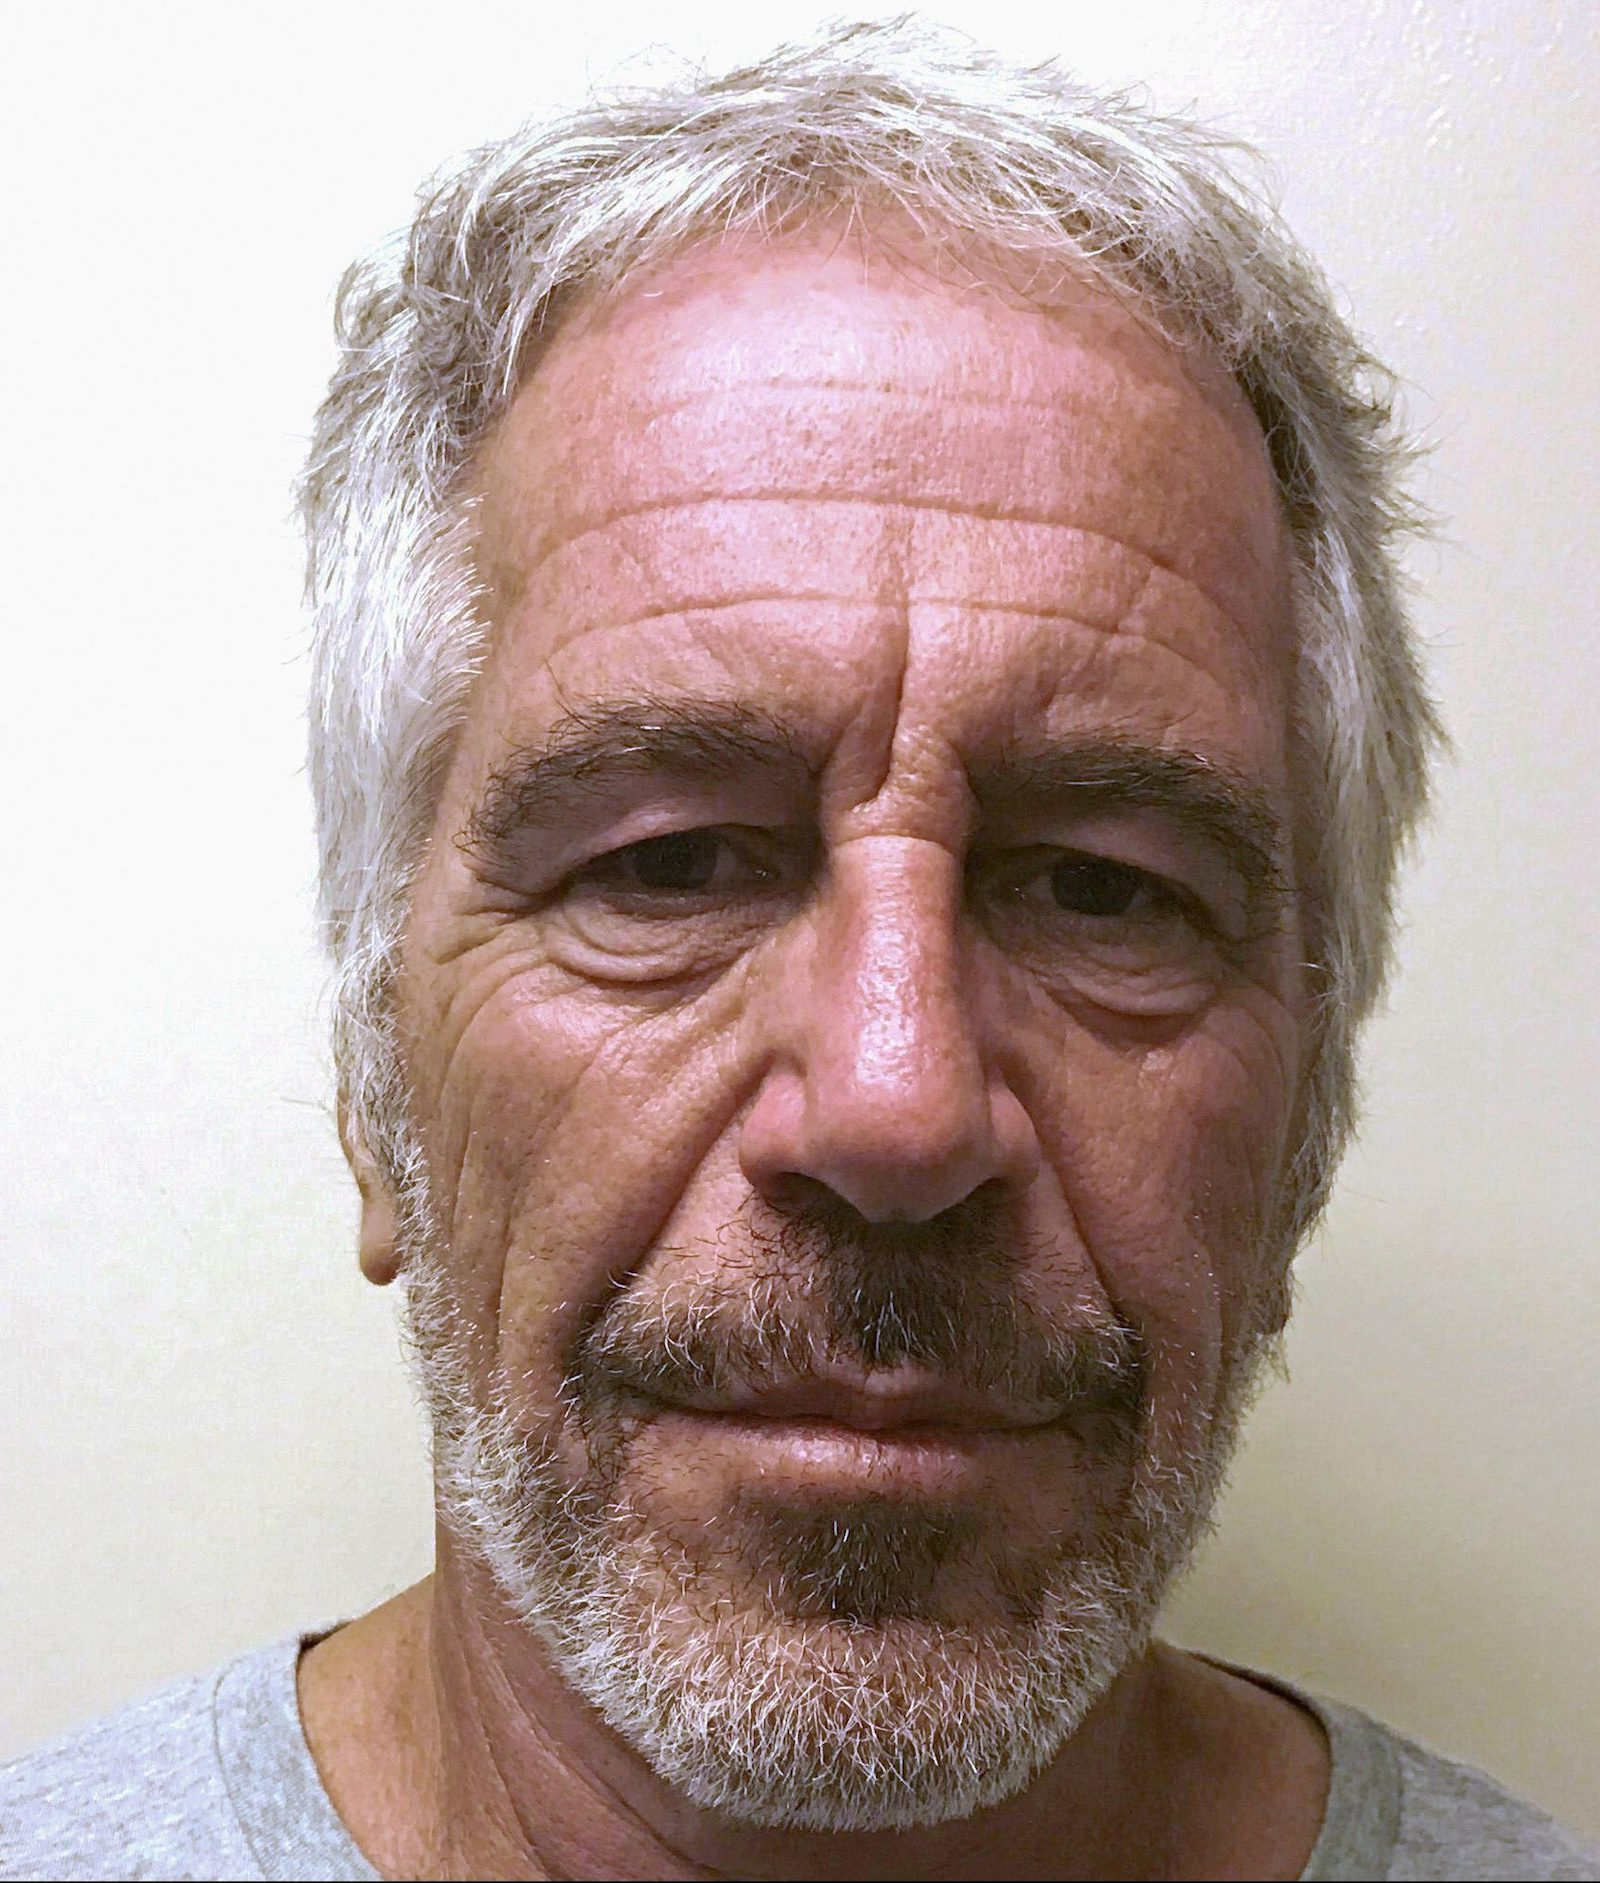 Even in death, Jeffrey Epstein is still ruining his victims' lives as his estate tries to stop a Jane Doe from suing them.